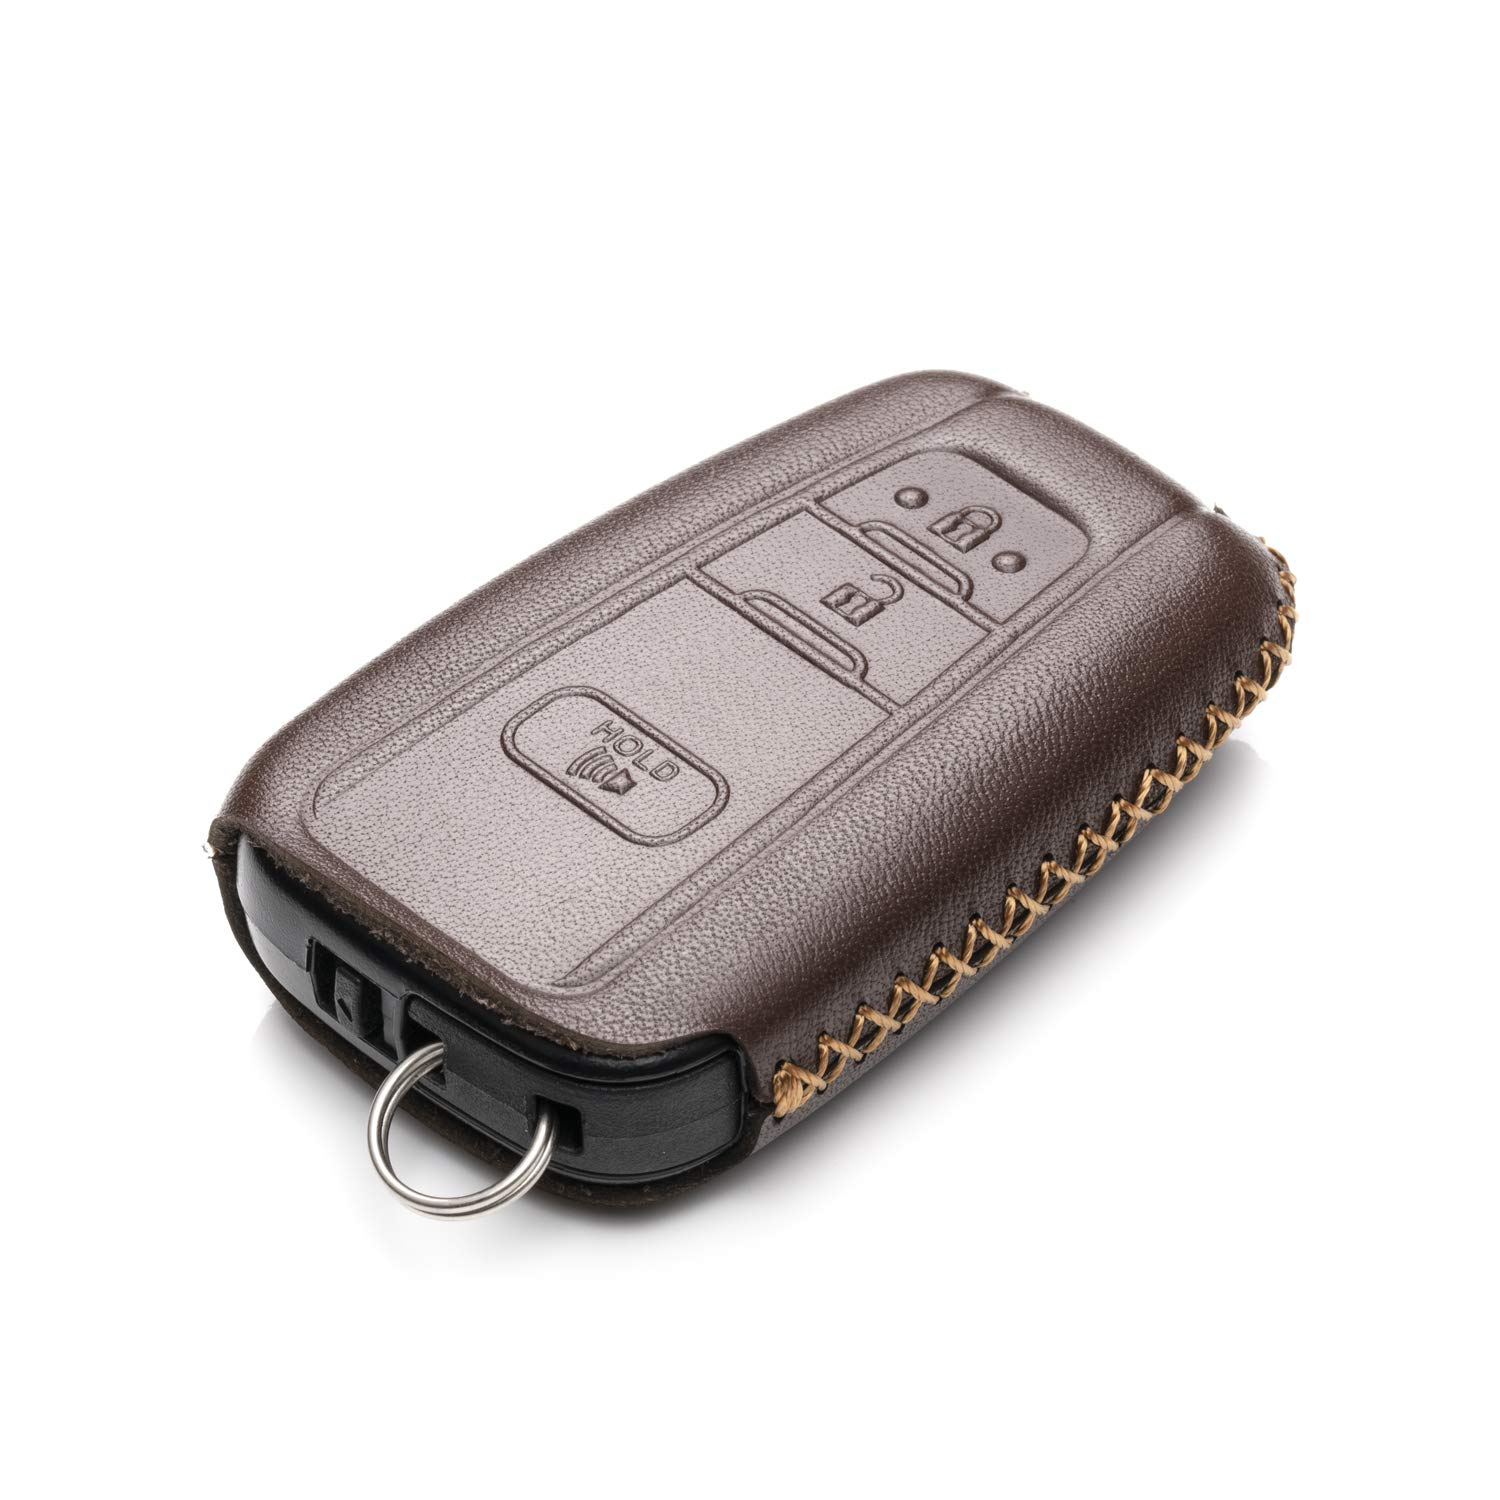 Avalon C-HR Vitodeco Genuine Leather Remote Key Fob Case Cover Protector with Key Chain for 2019 Toyota Corolla Hatchback Rav 4 3 Buttons, Brown Camry Prius